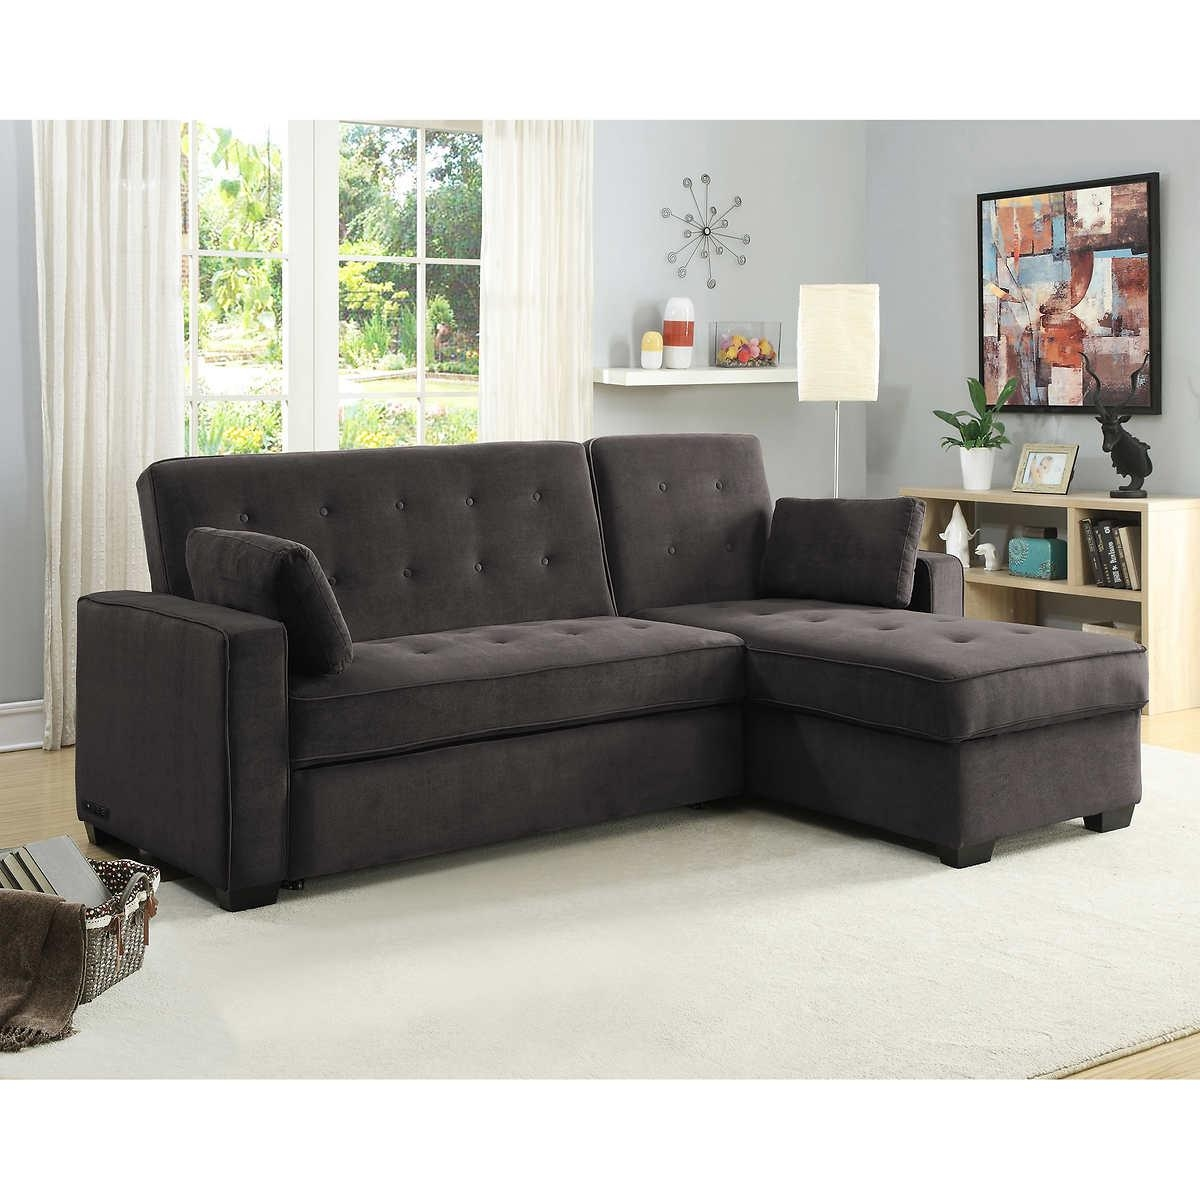 Sofas Center : Stunning Costcoecliner Sofa Images Concept Throughout Berkline Sofa (View 8 of 20)